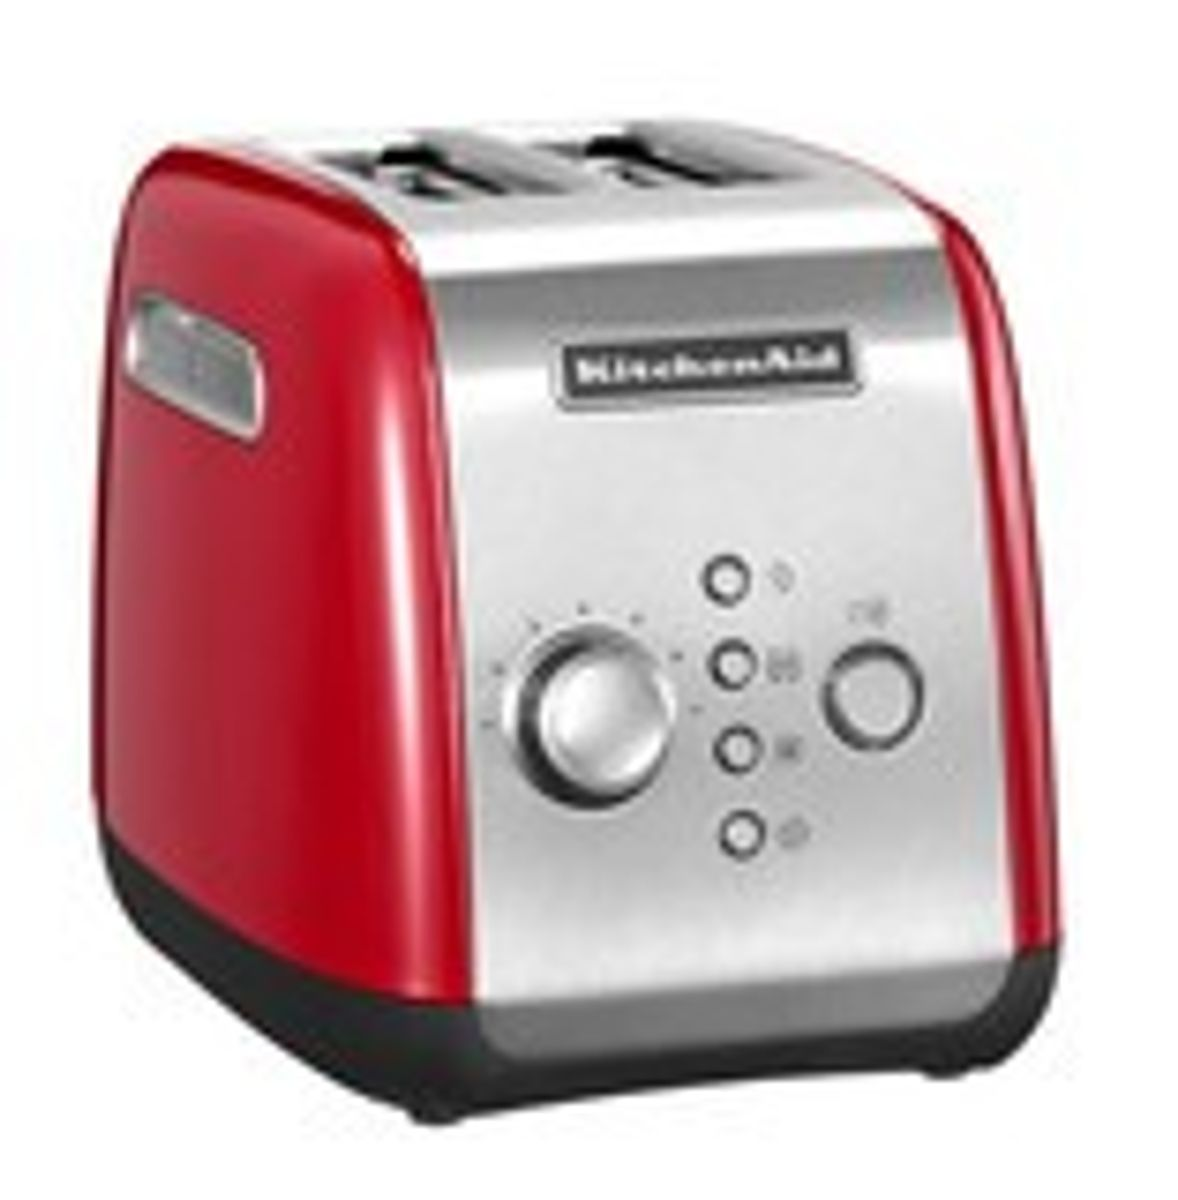 GRILLE PAIN 2 TRANCHES ROUGE EMPIRE 5KMT221EER - KITCHENAID